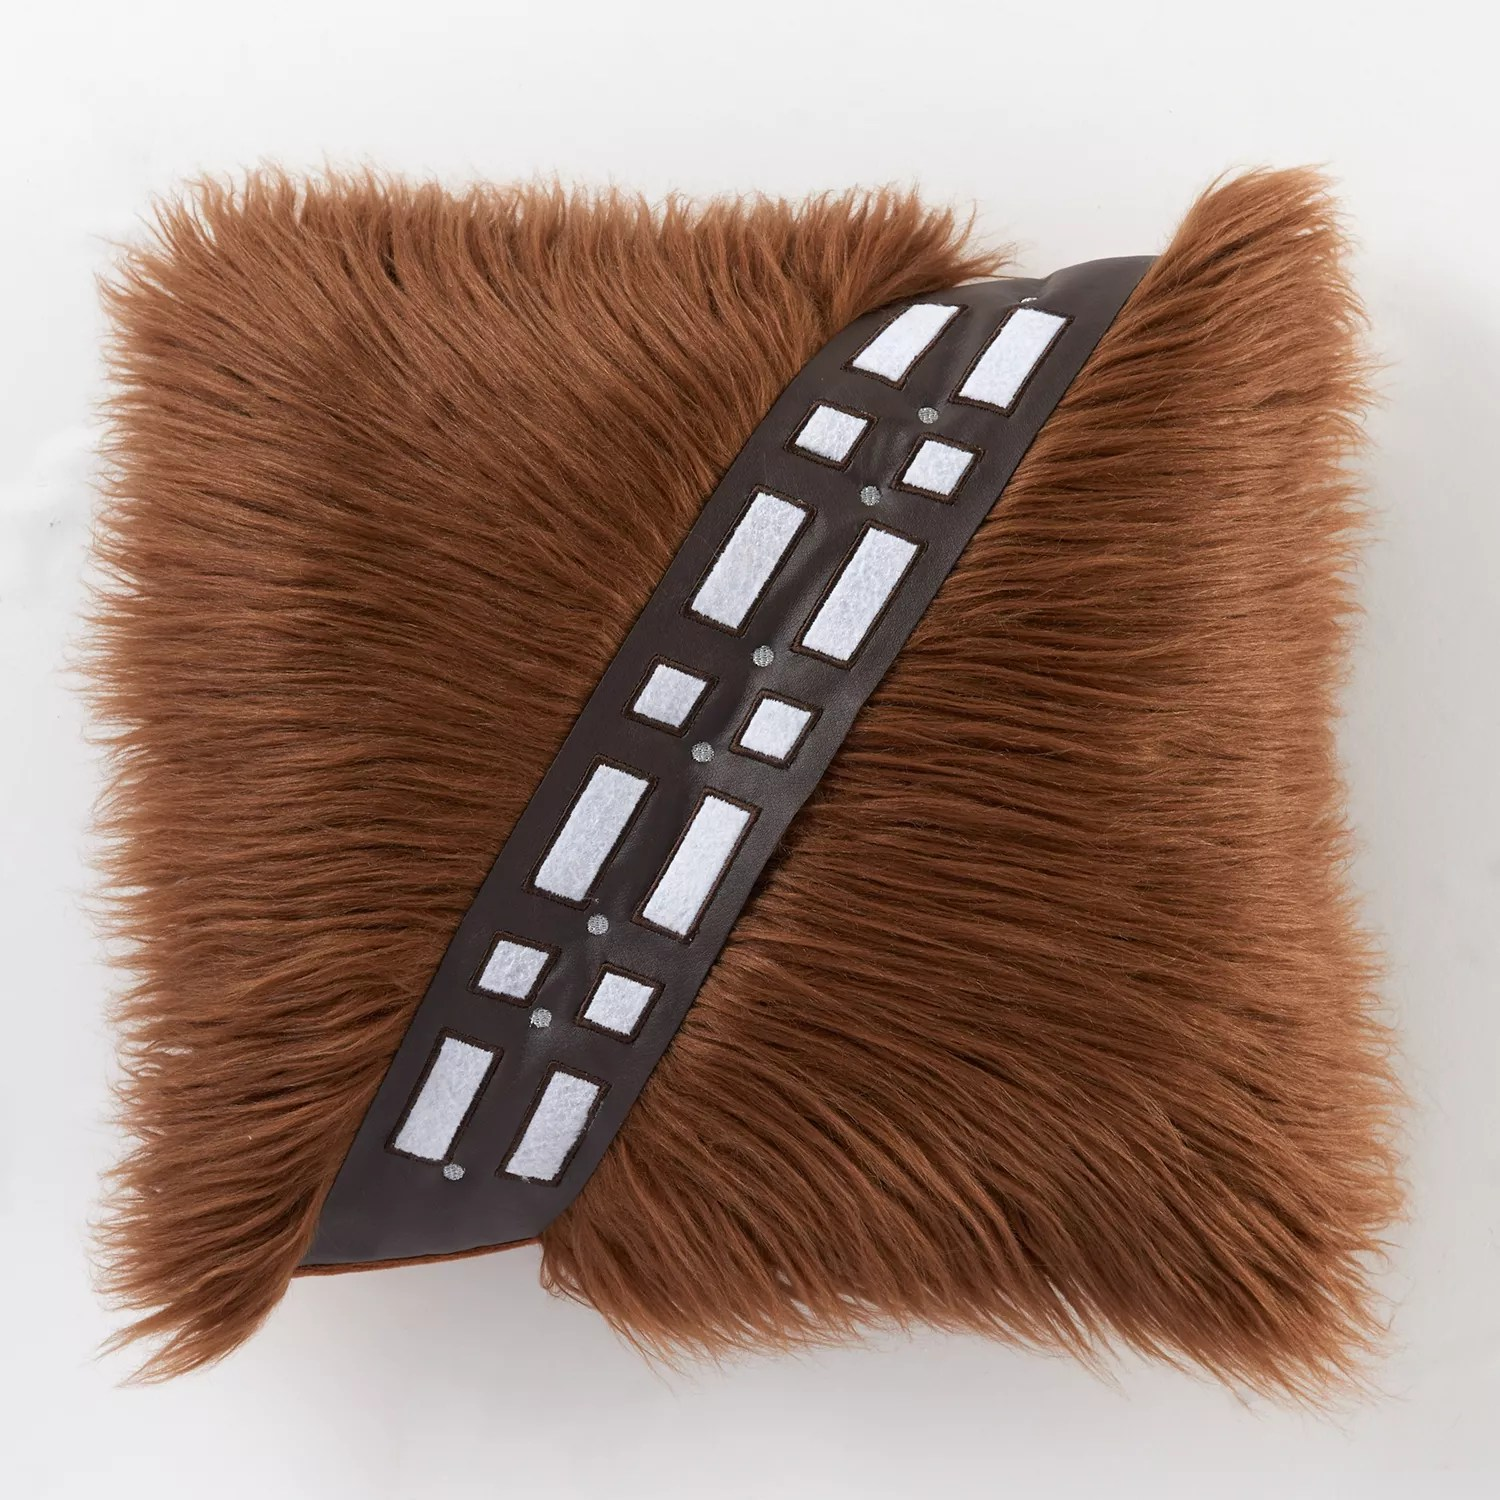 Star Wars Home Decor   Kohl s Star Wars Classic Chewbacca Throw Pillow